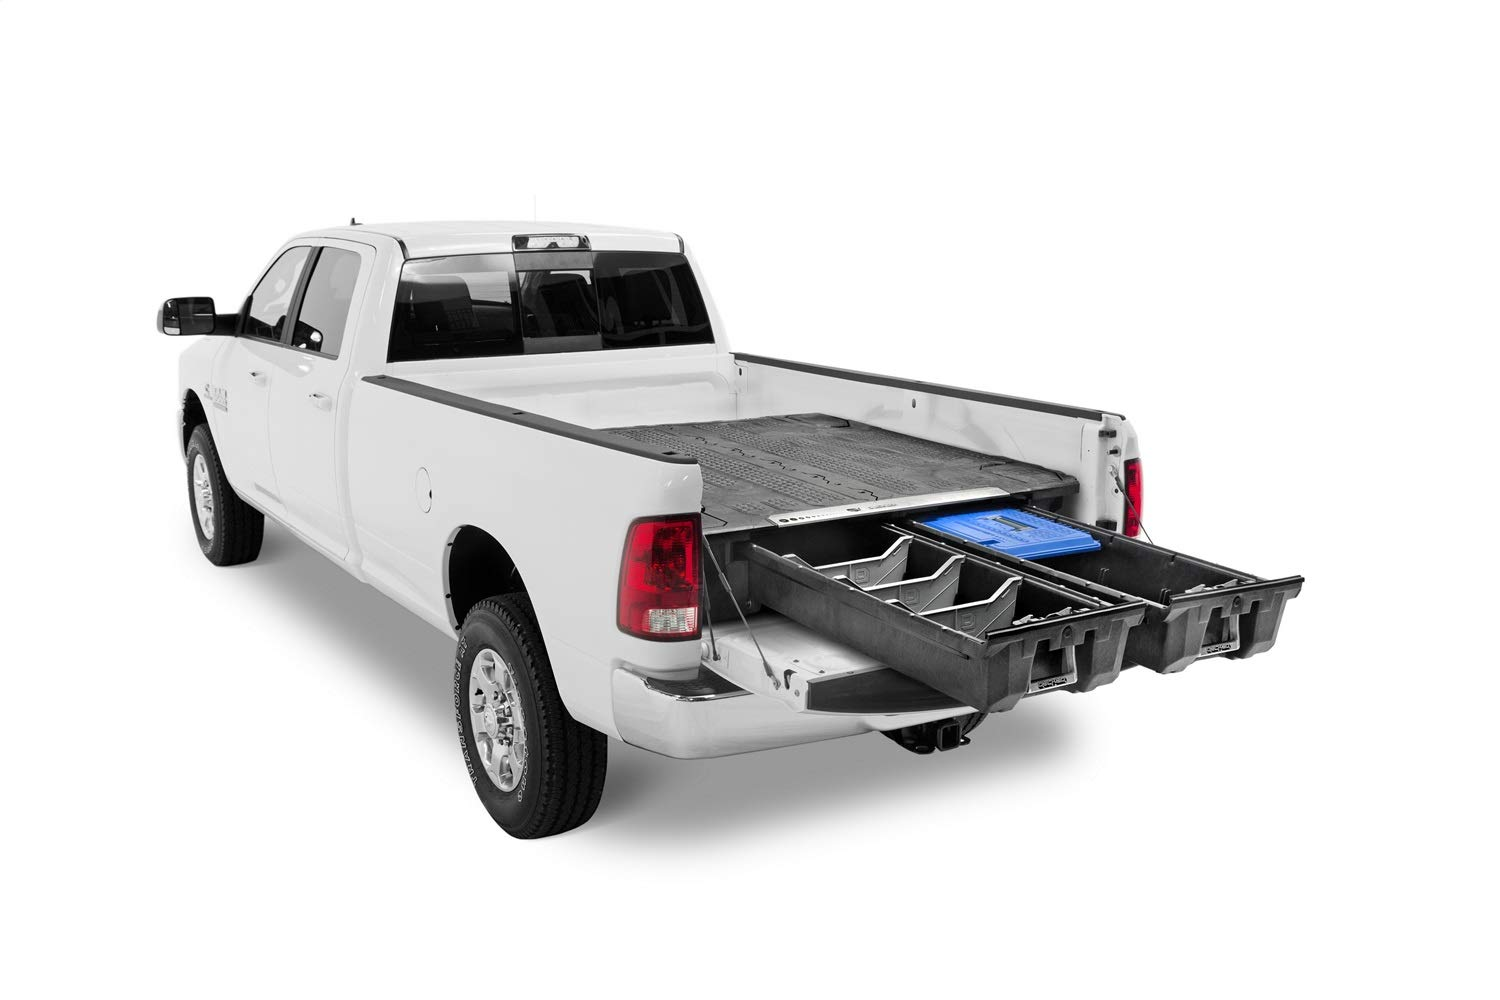 6 6 bed length 2004-2014 DECKED Pickup Truck Storage System for Ford F-150